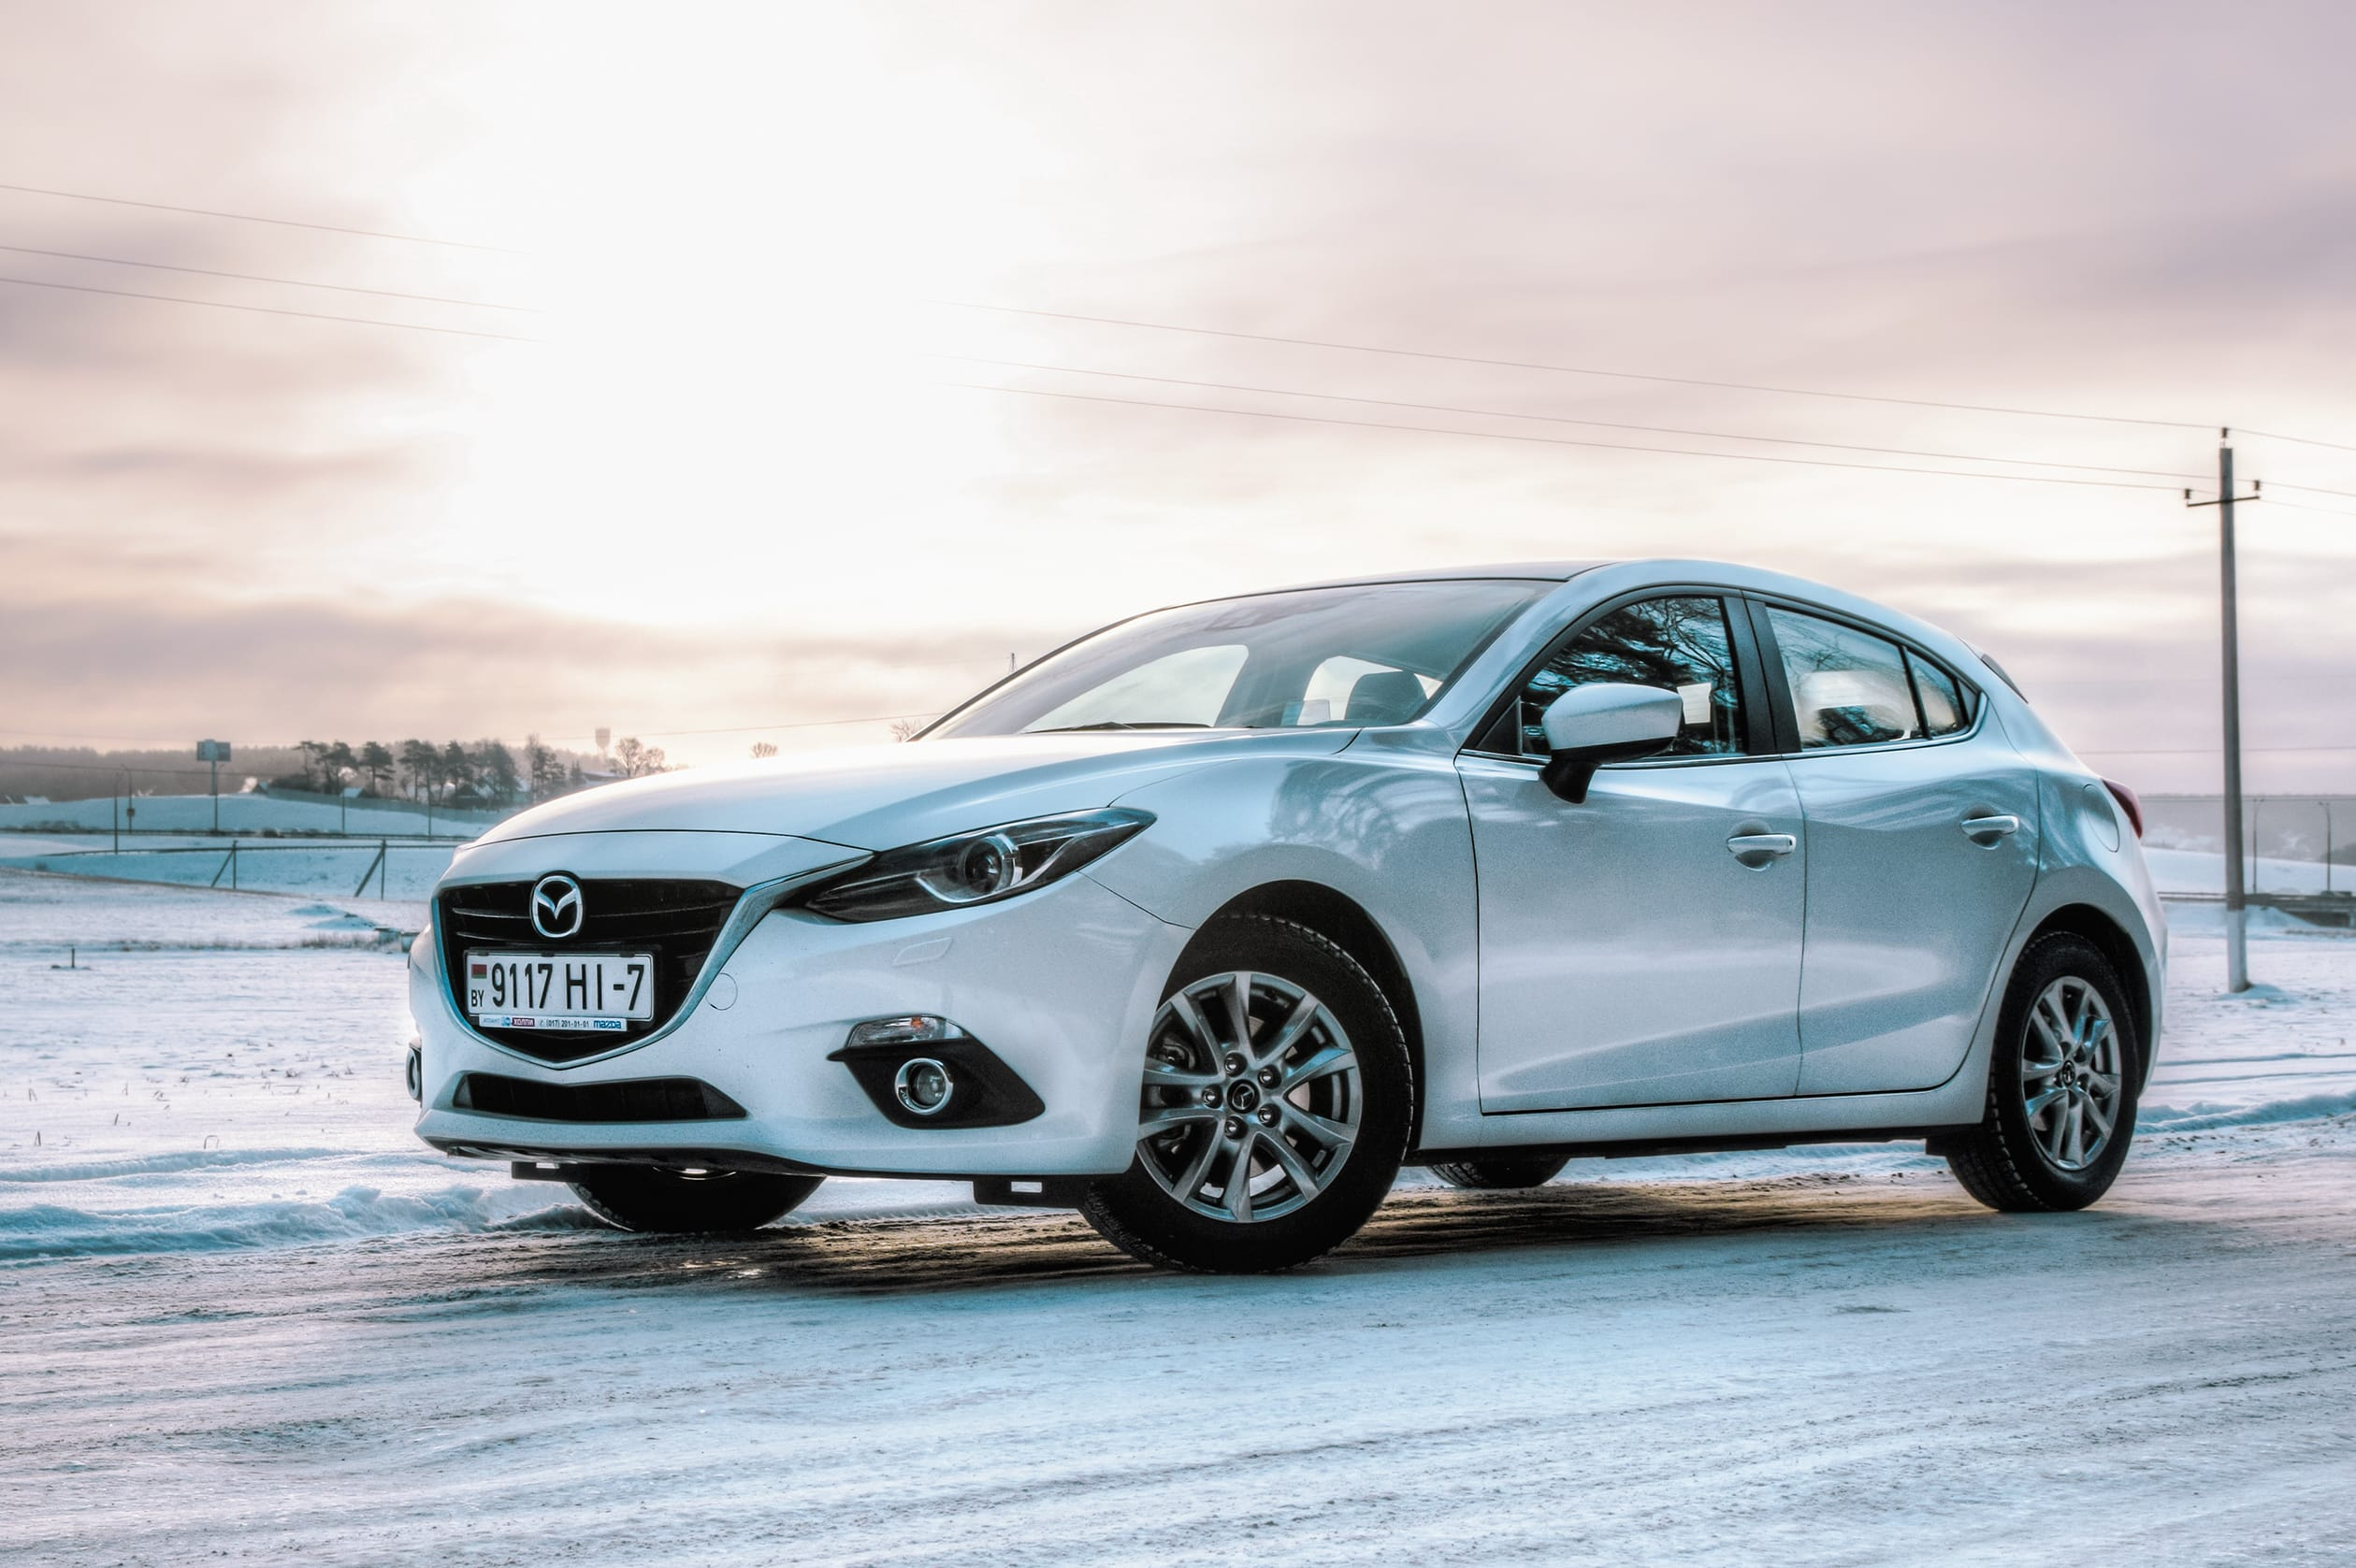 Mazda3s Recalled For Possible Detachment of Rearview Mirrors